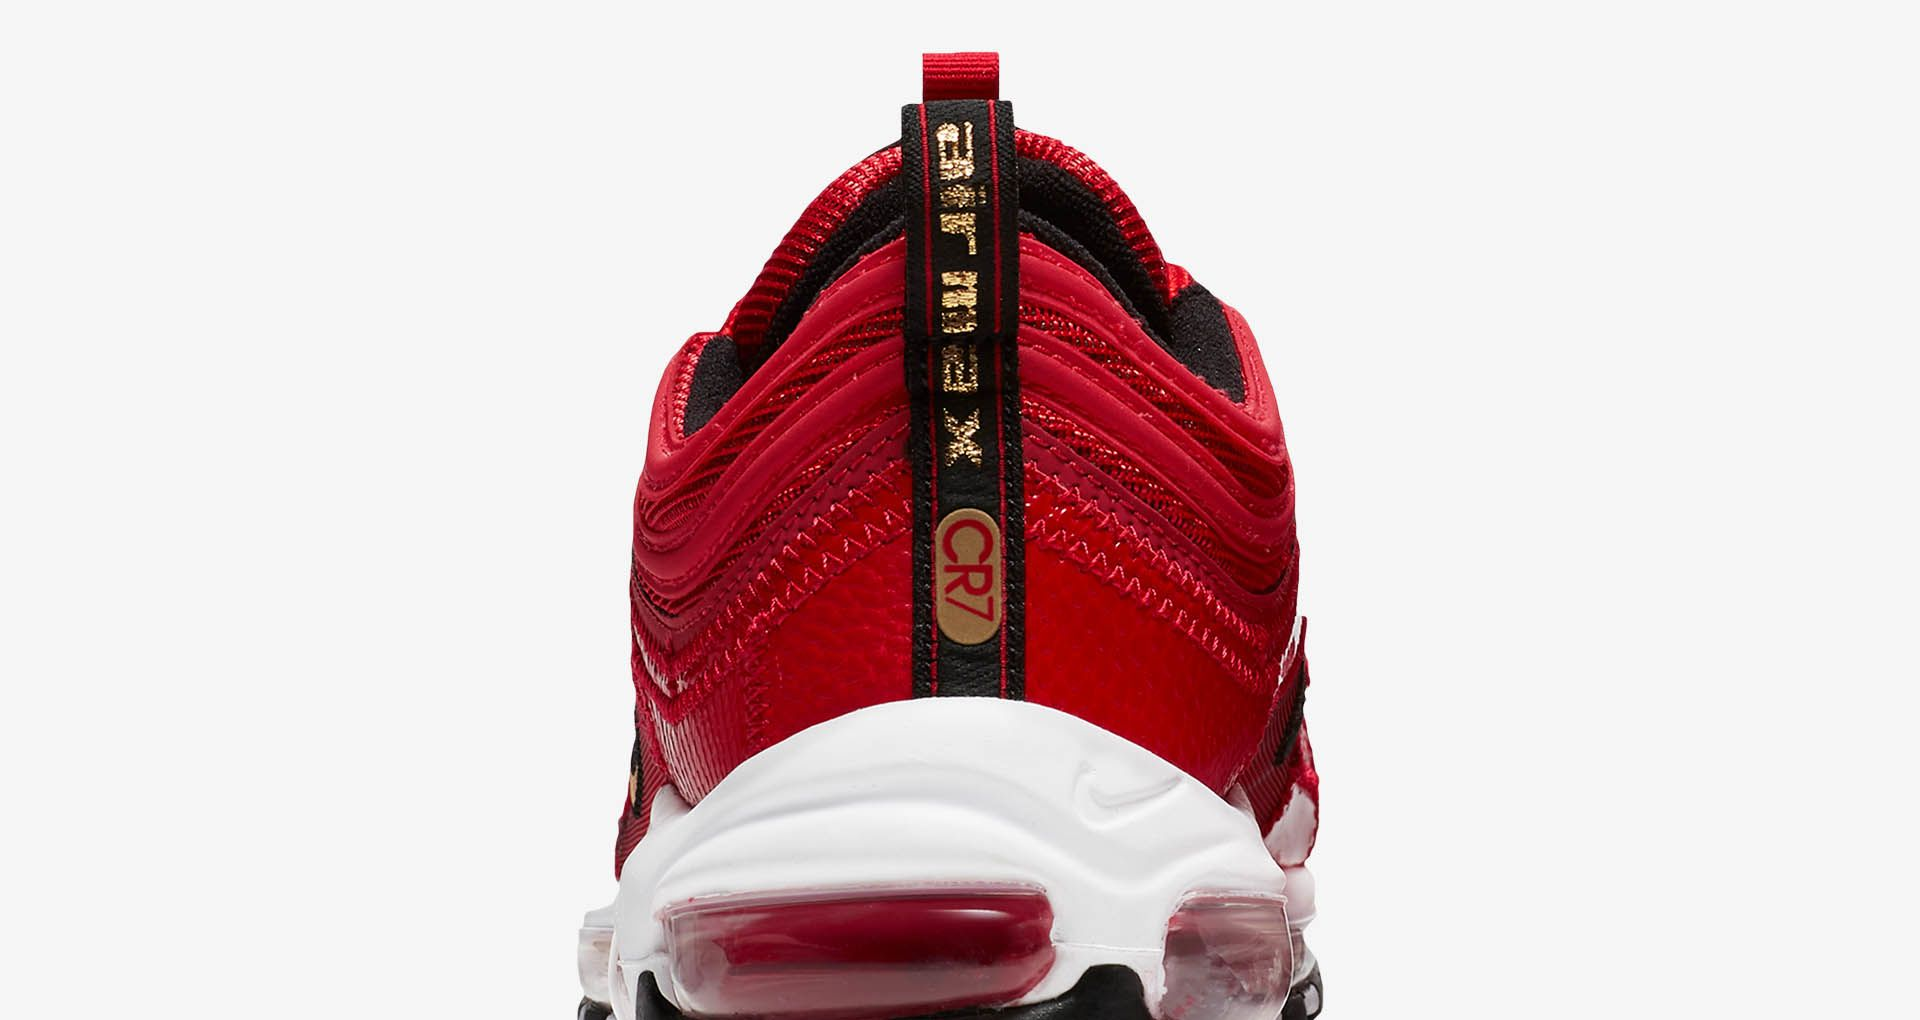 fcdebe5f8b Nike Air Max 97 CR7 'Portugal Patchwork' Release Date. Nike⁠+ SNKRS